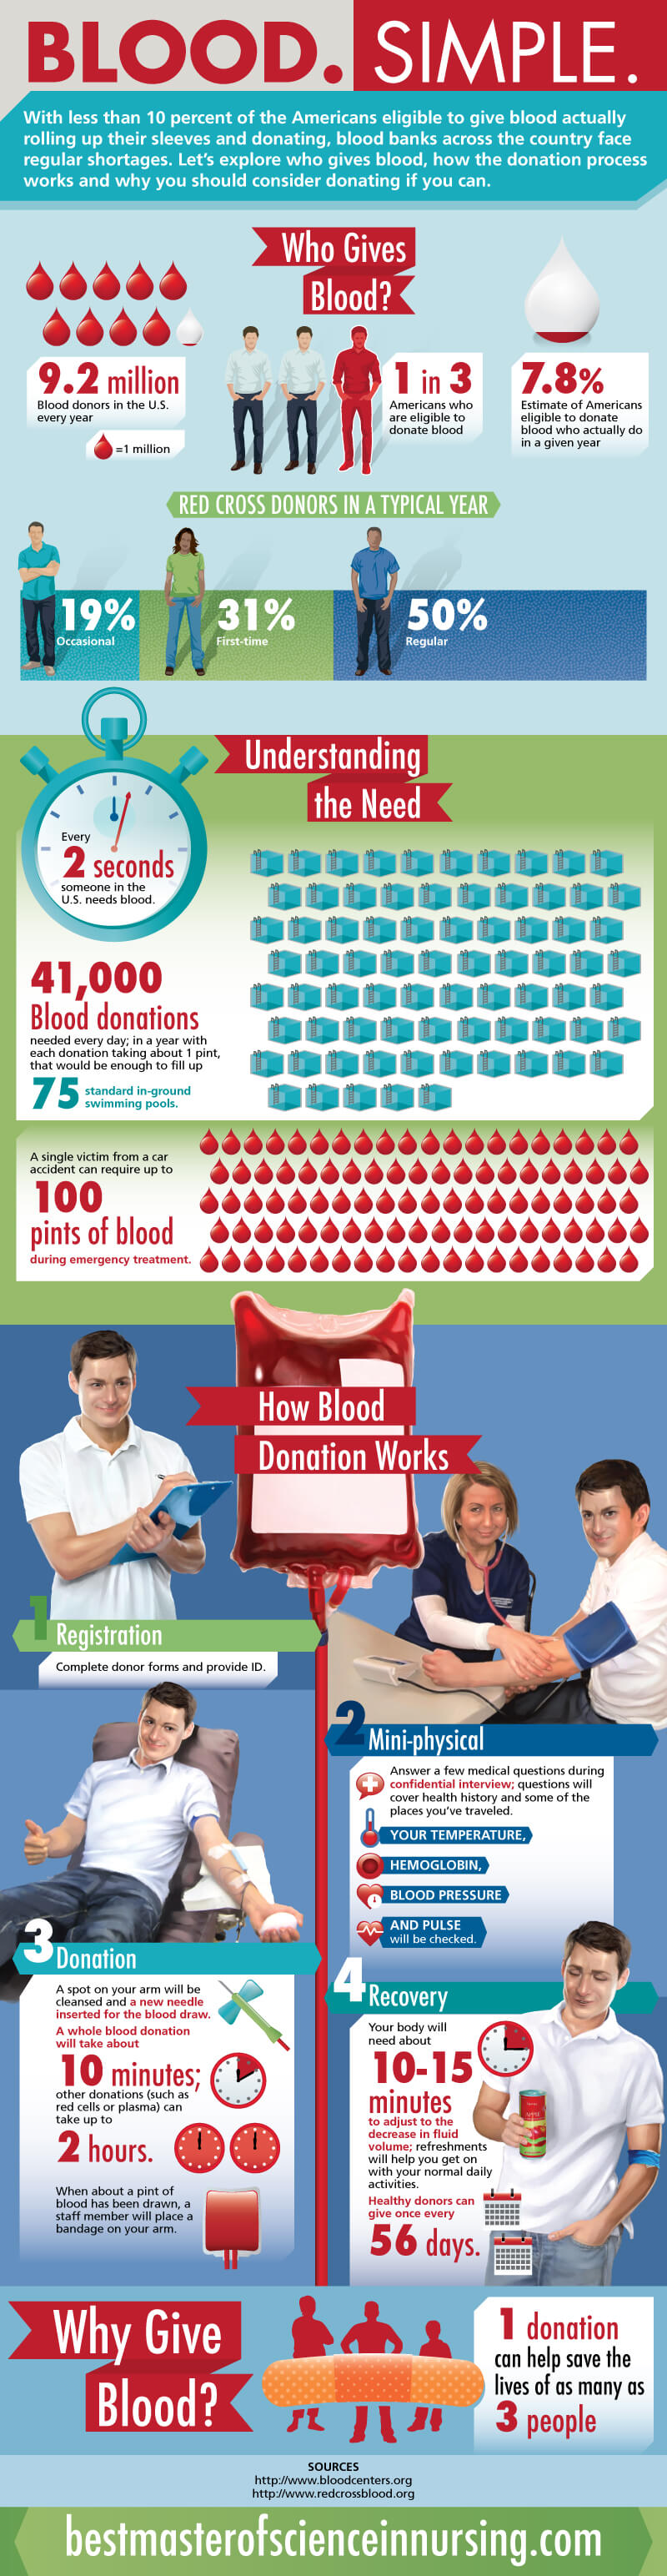 blood-donation-infographic